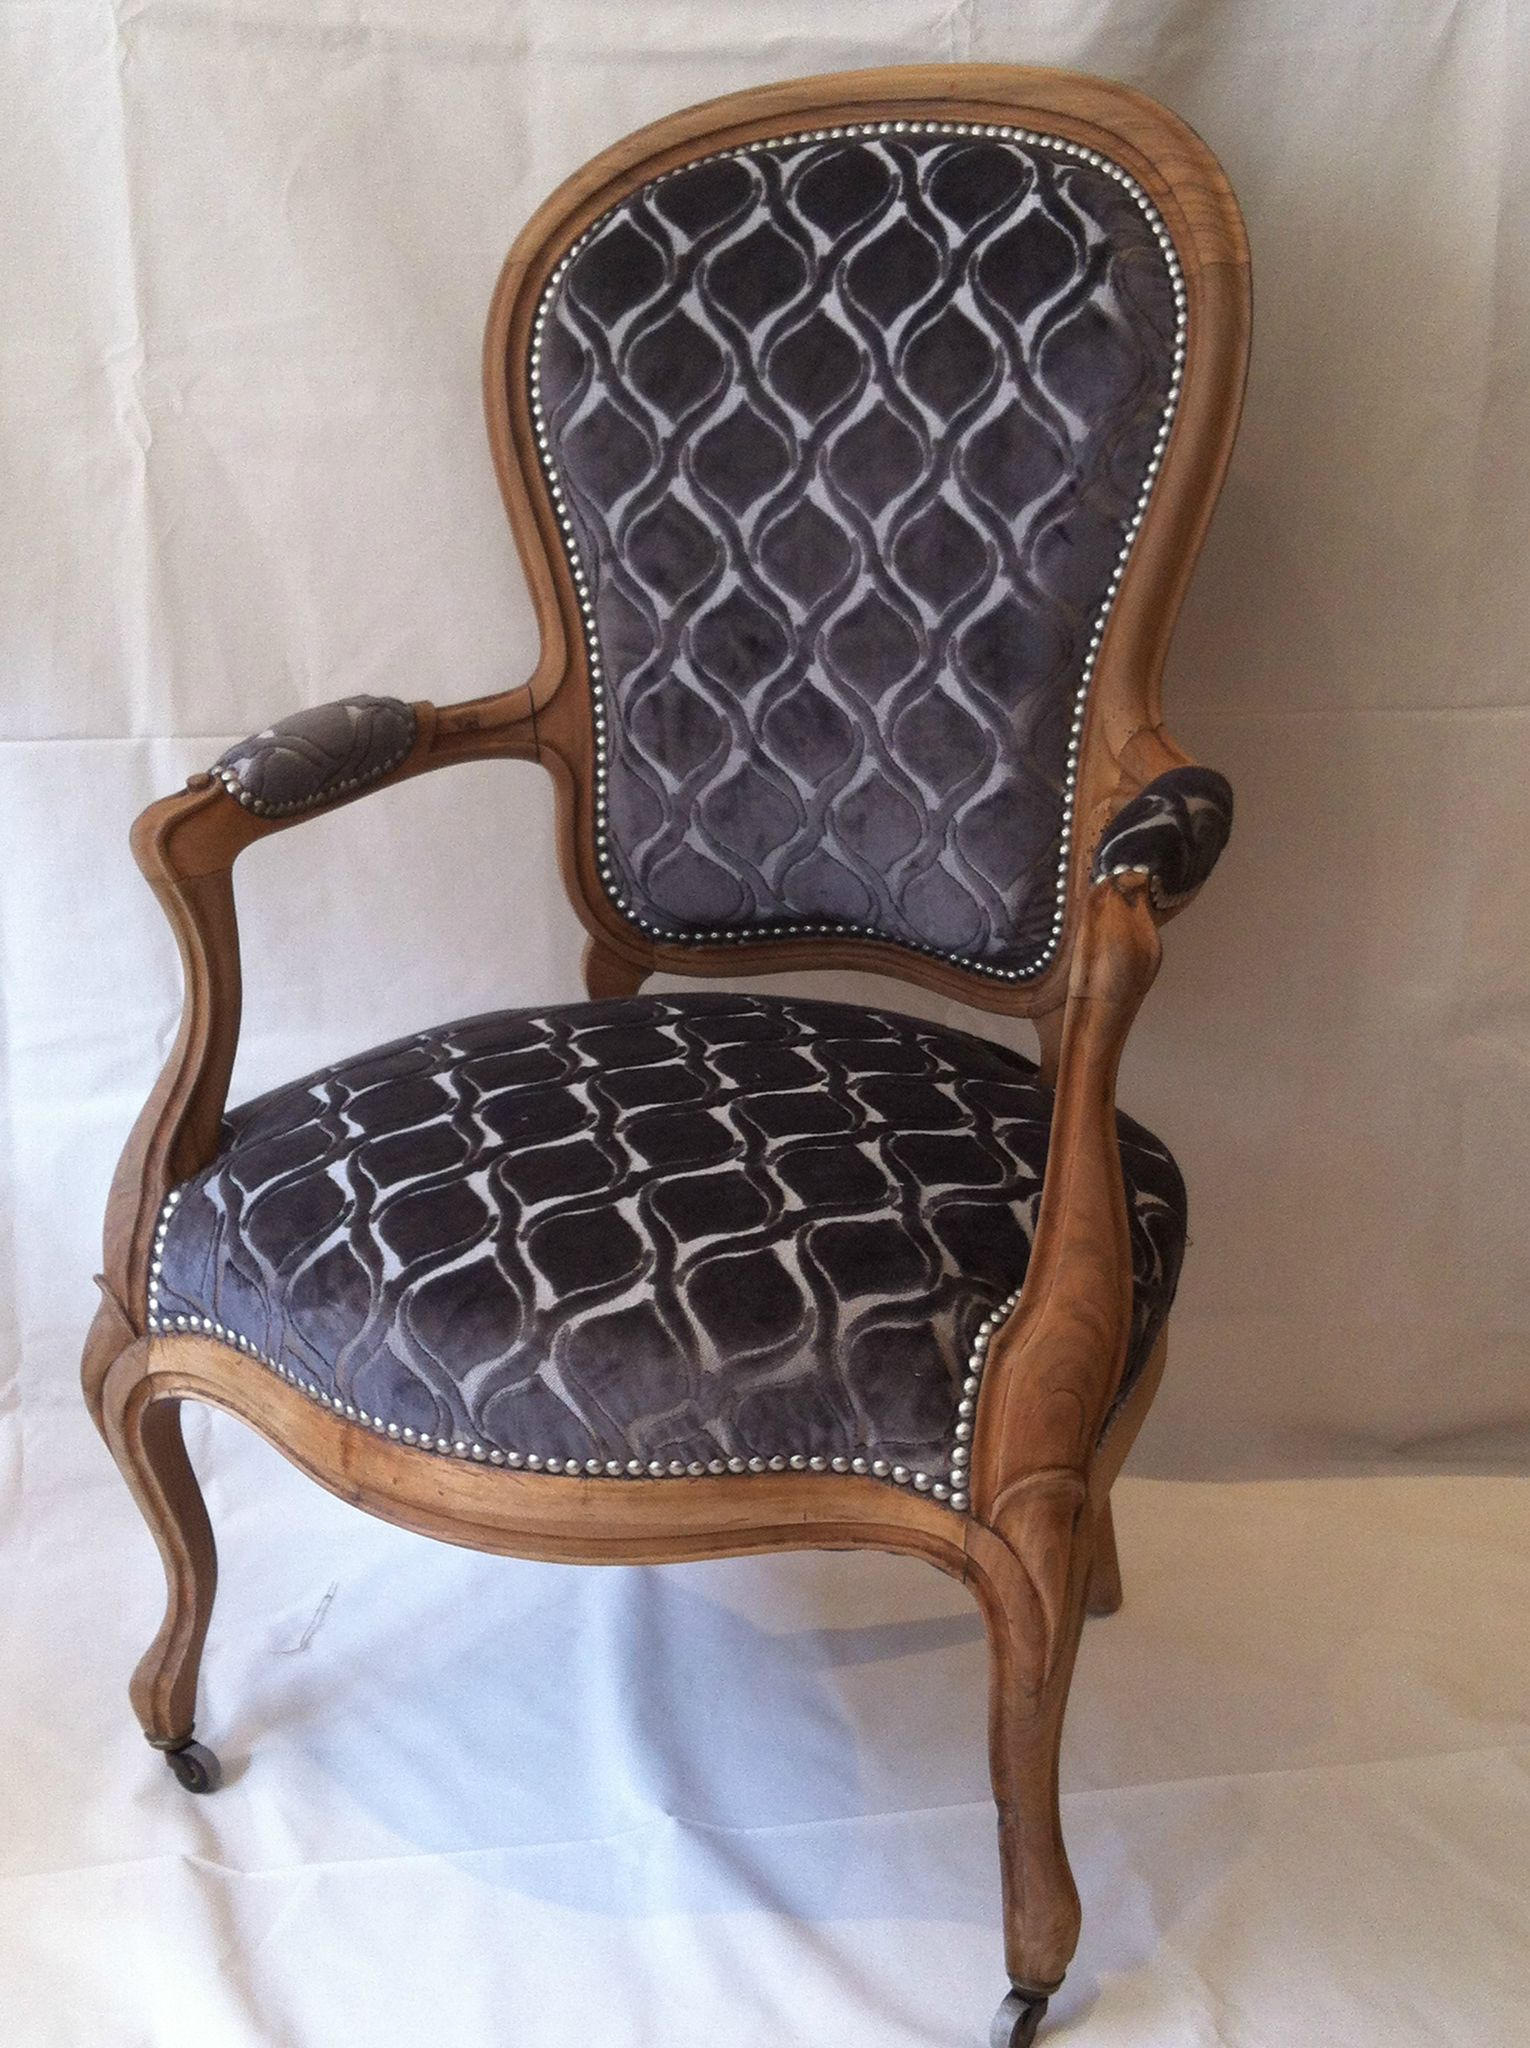 fauteuil et chaises louis philippe de madame bg tendance chic tapissier cr ateur. Black Bedroom Furniture Sets. Home Design Ideas